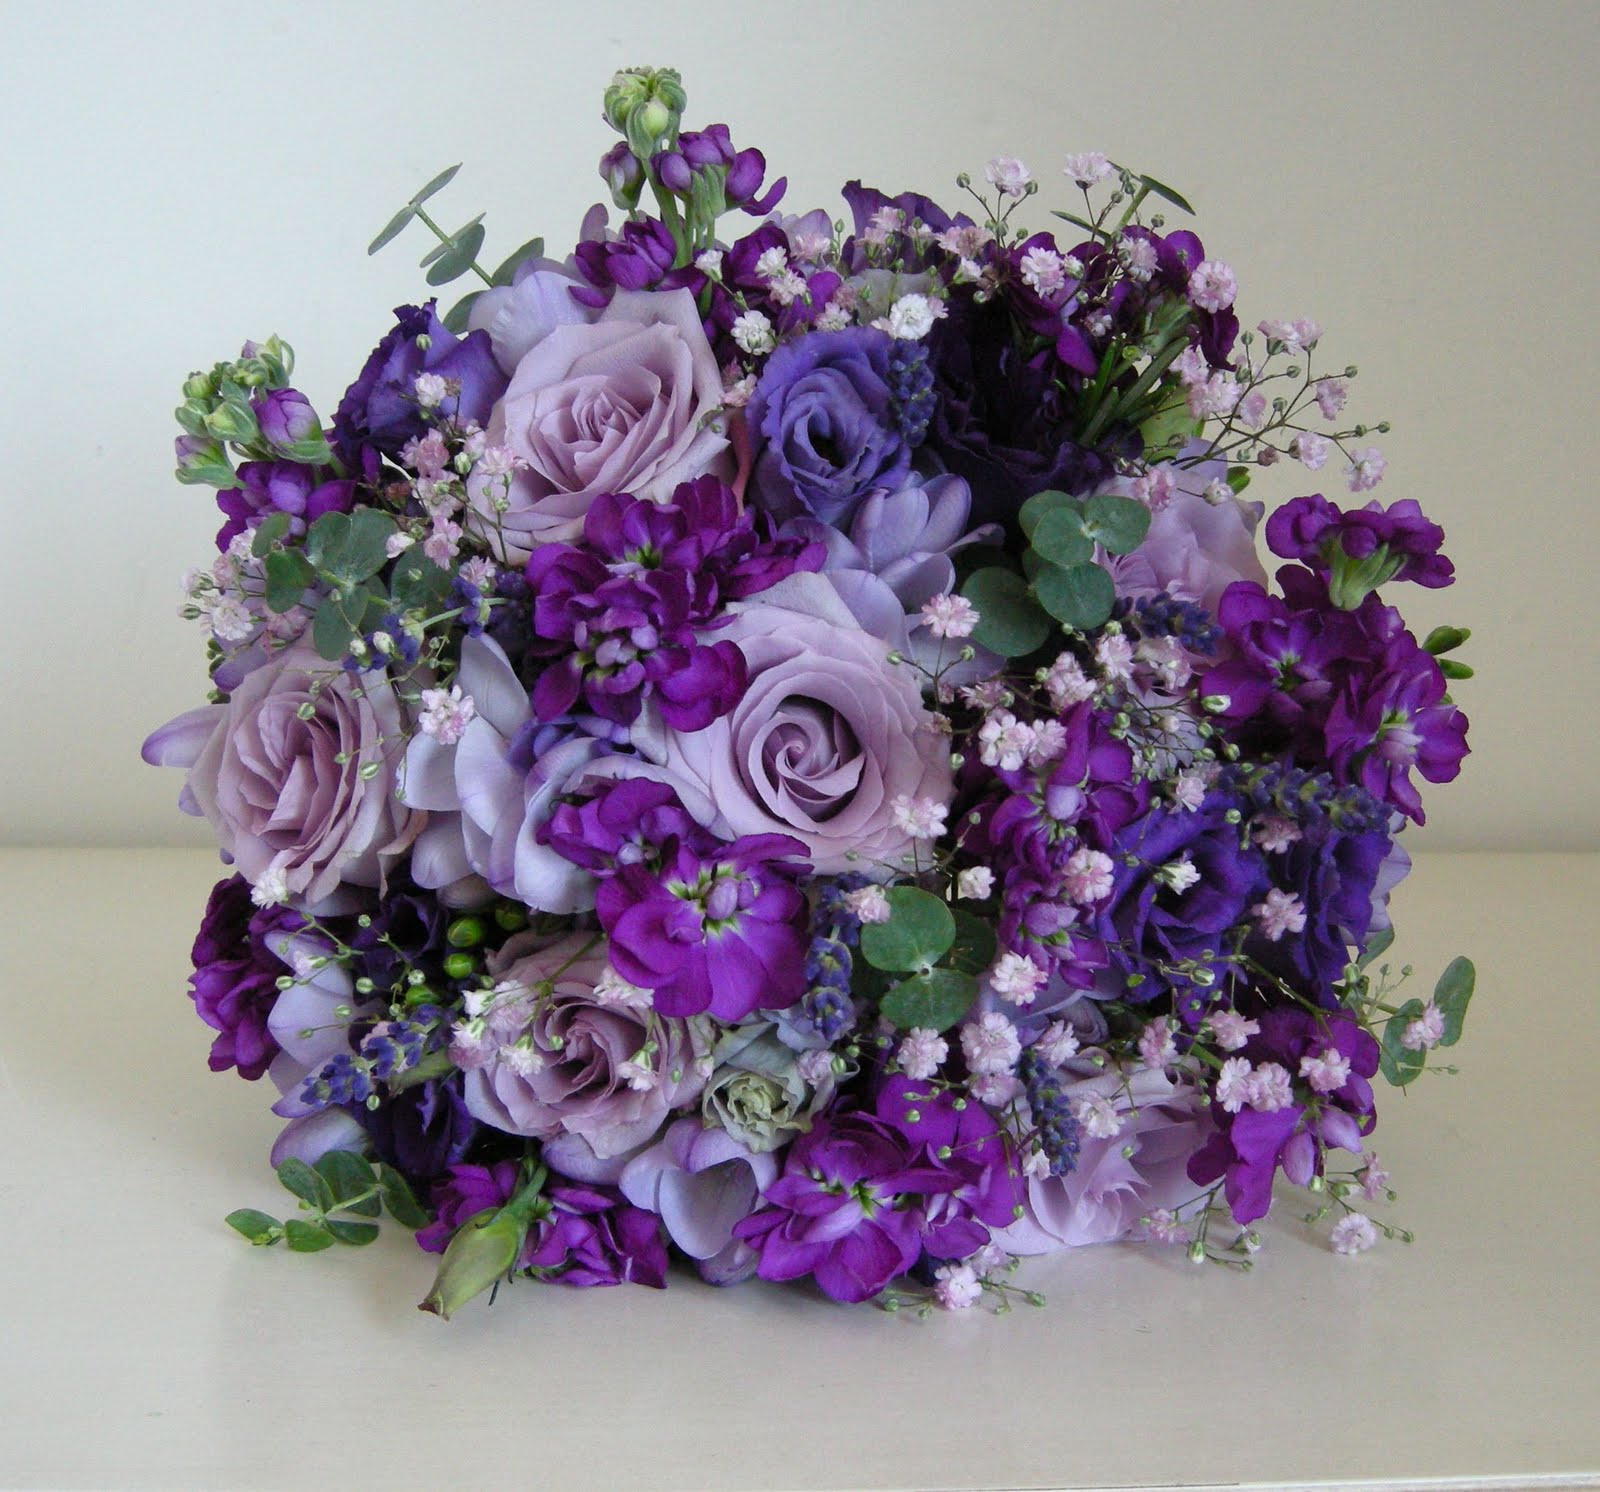 Wedding Flowers Blog Becky 39 S Country Style Wedding Flowers In Purples